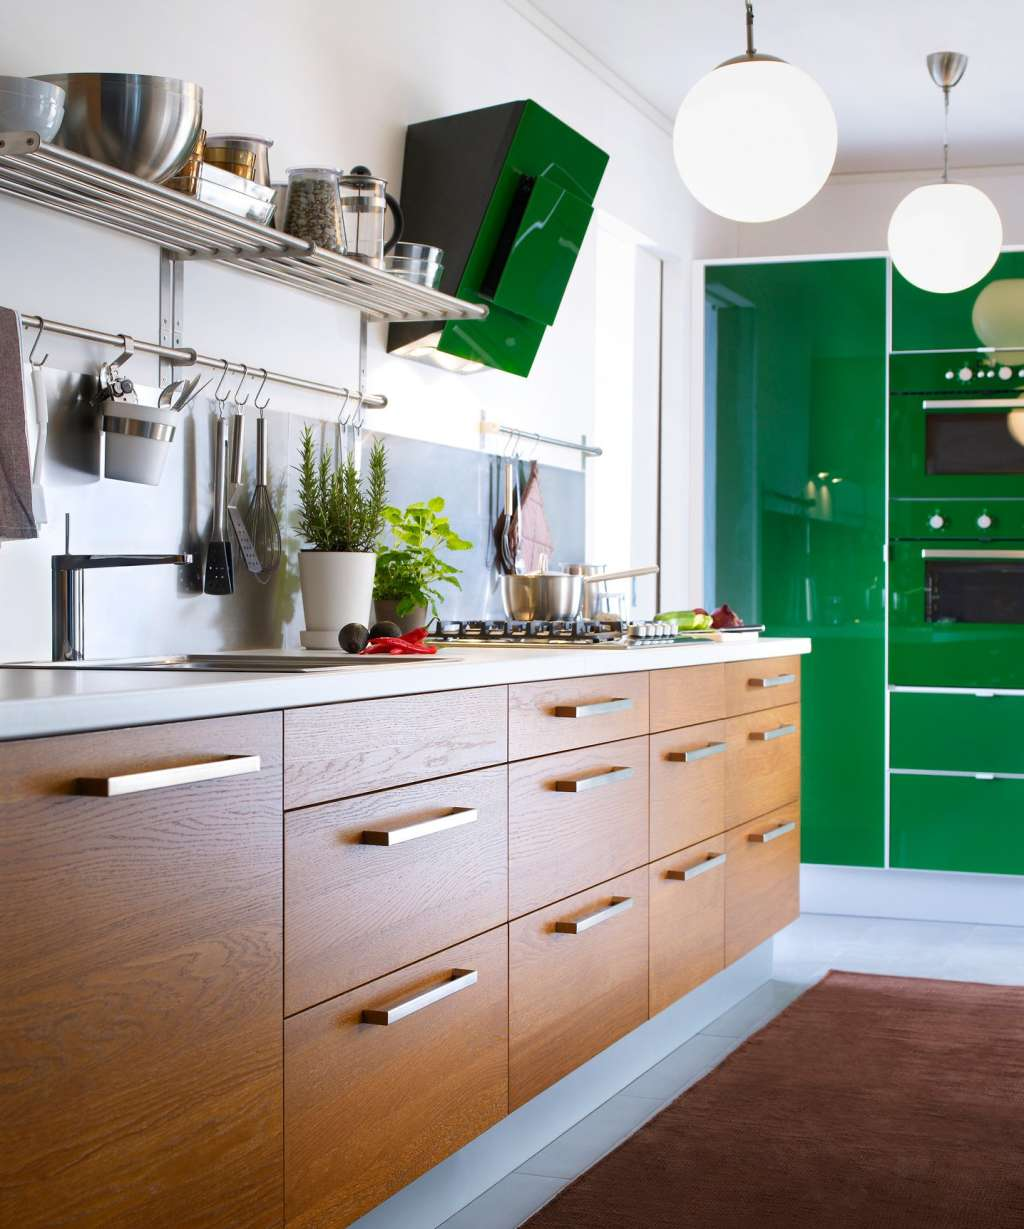 Kitchen For Rent: 11 Inexpensive Knobs & Handles For Your Rental Kitchen